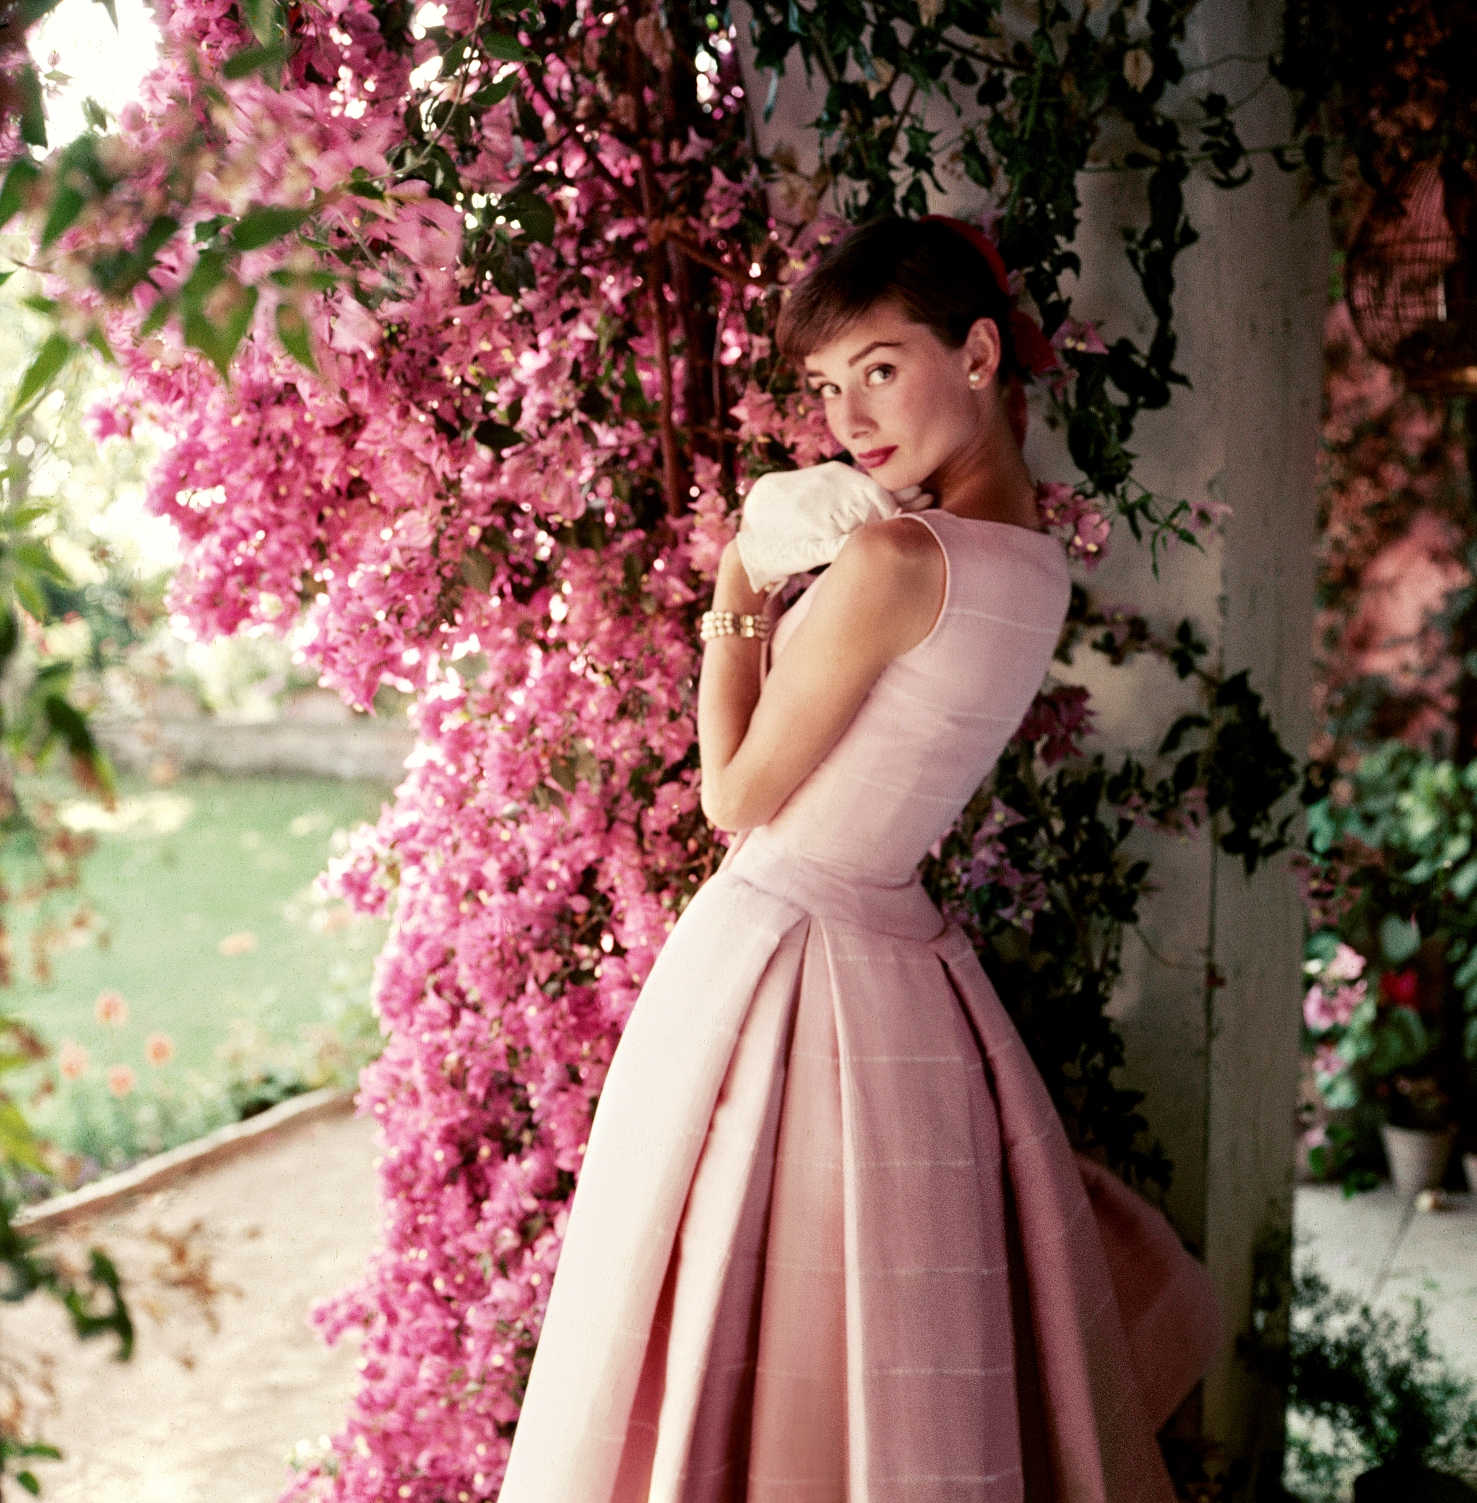 Audrey Hepburn photographed wearing Givenchy by Norman Parkinson, 1955 © Norman Parkinson Ltd/Courtesy Norman Parkinson Archive. Used with permission from The National Portrait Gallery.